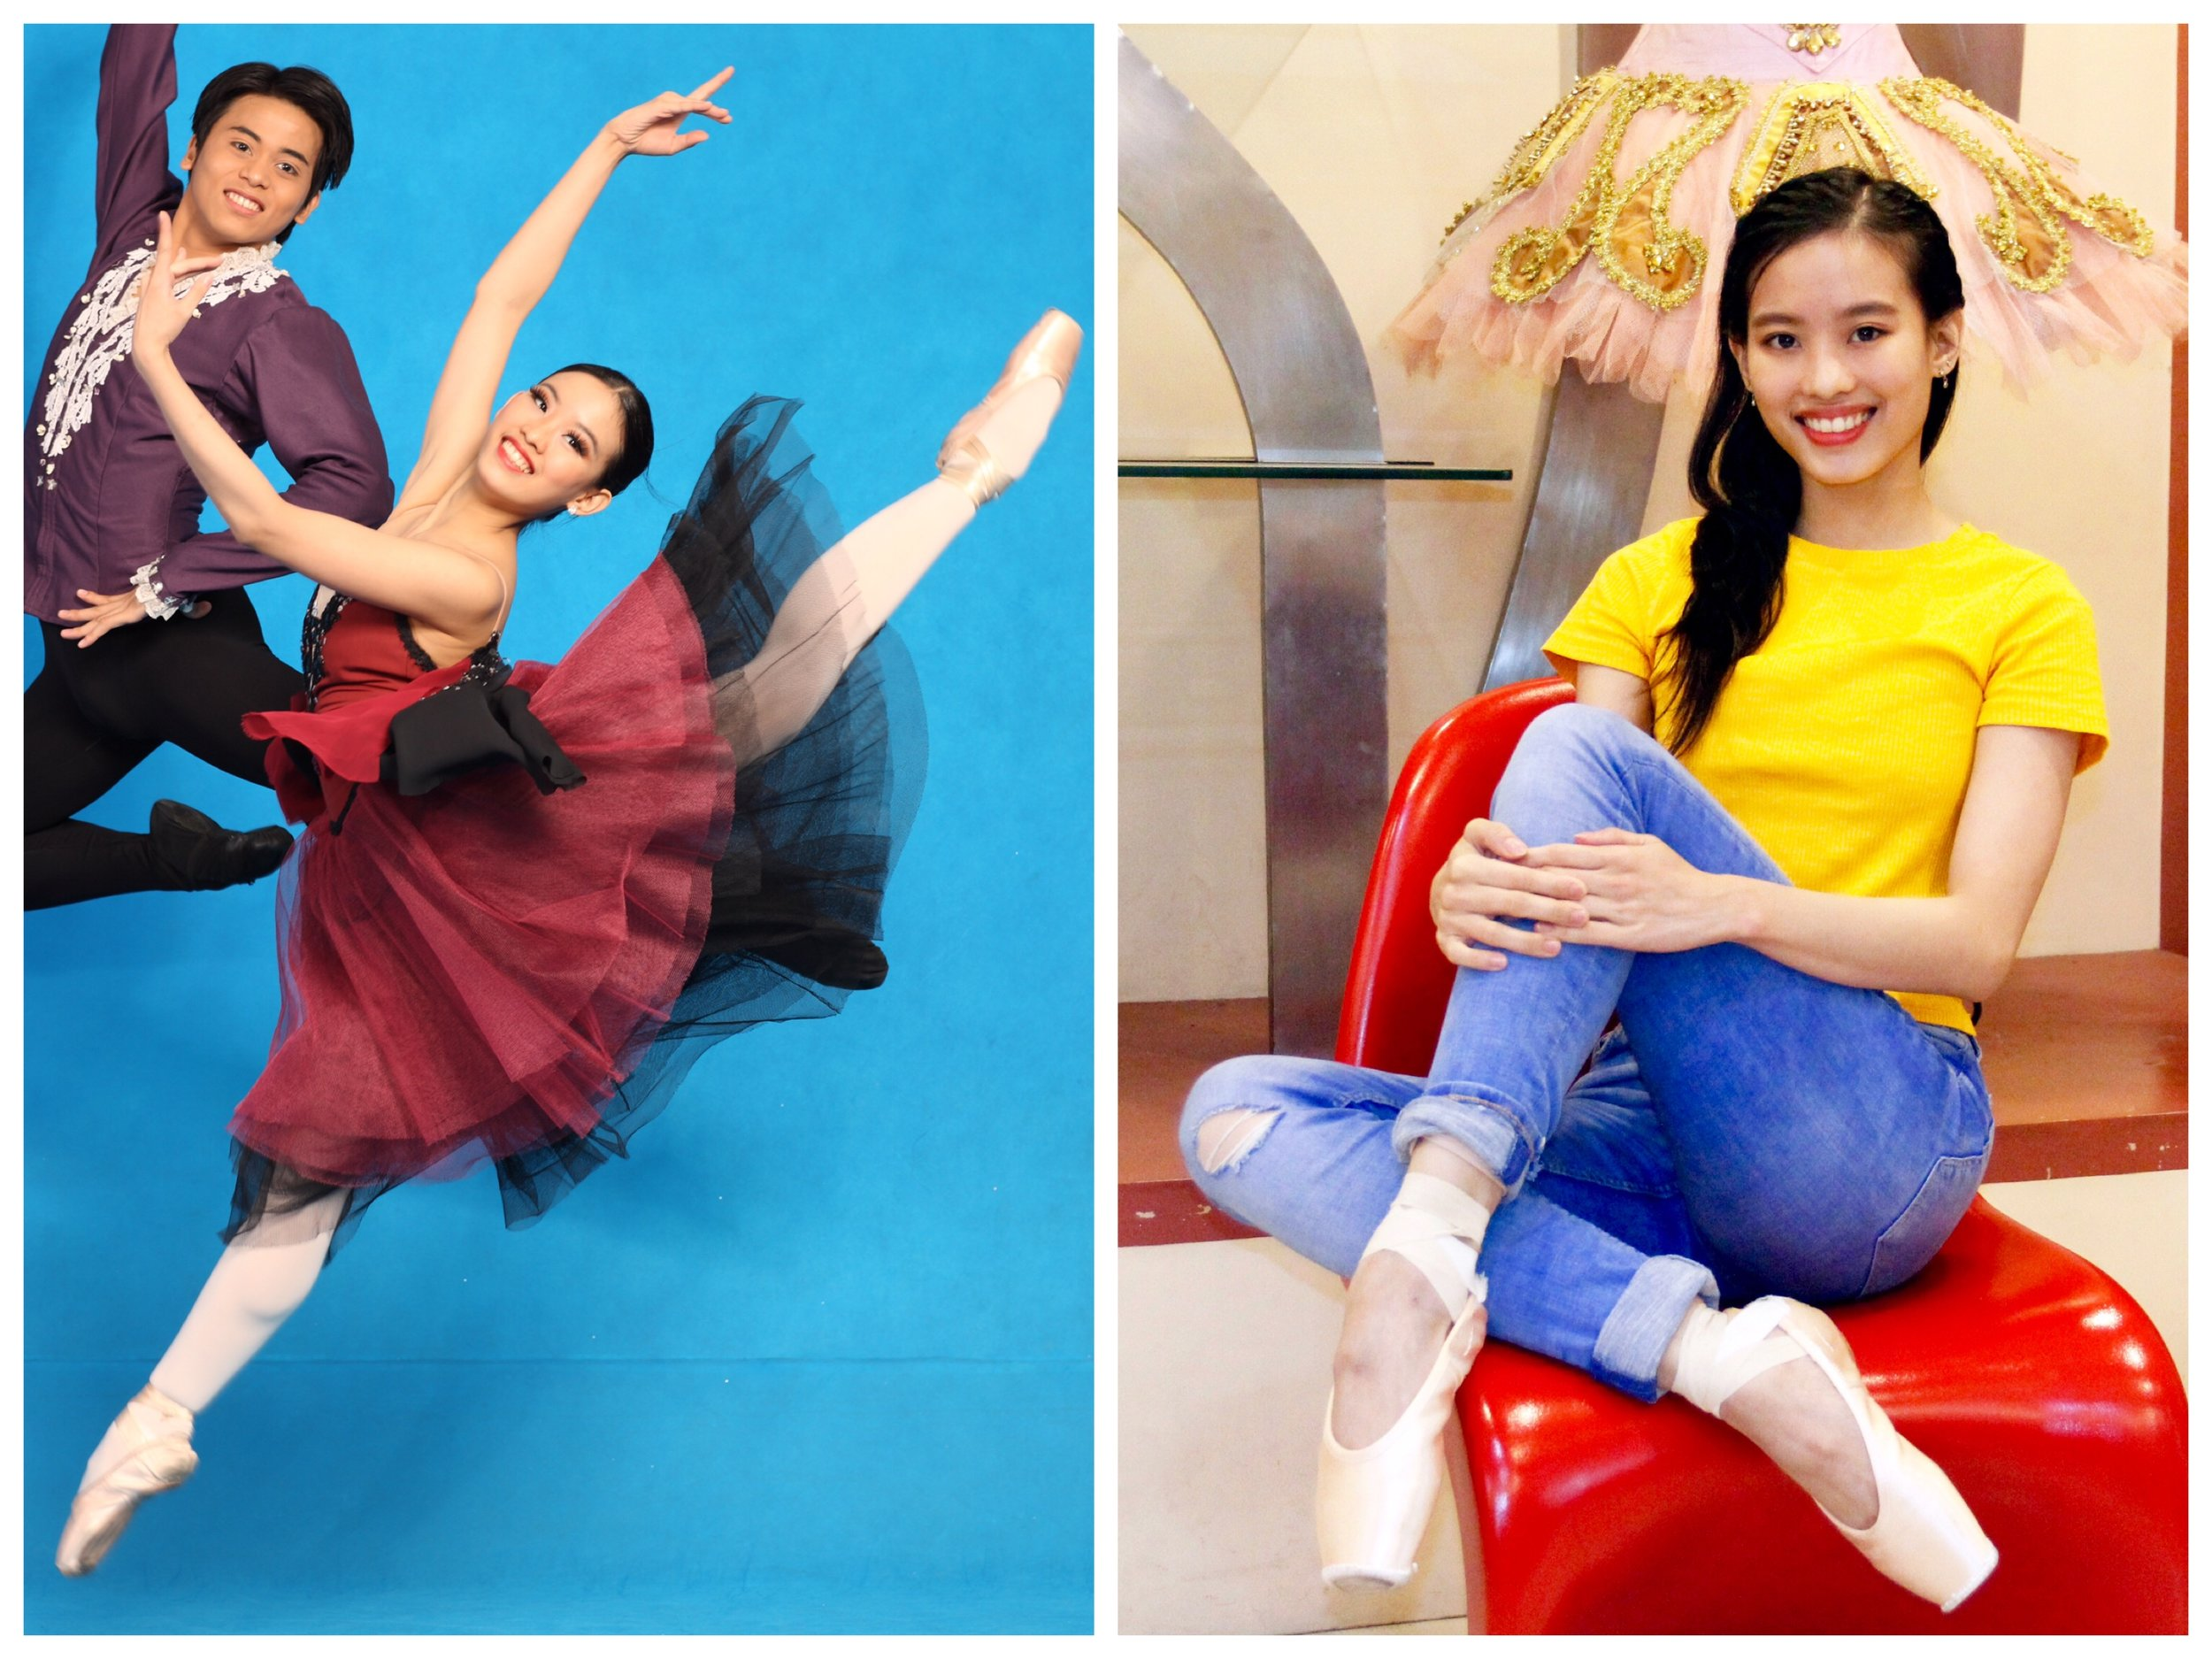 Ballet Manila artists: Then and now 1 - Ballet Manila Archives